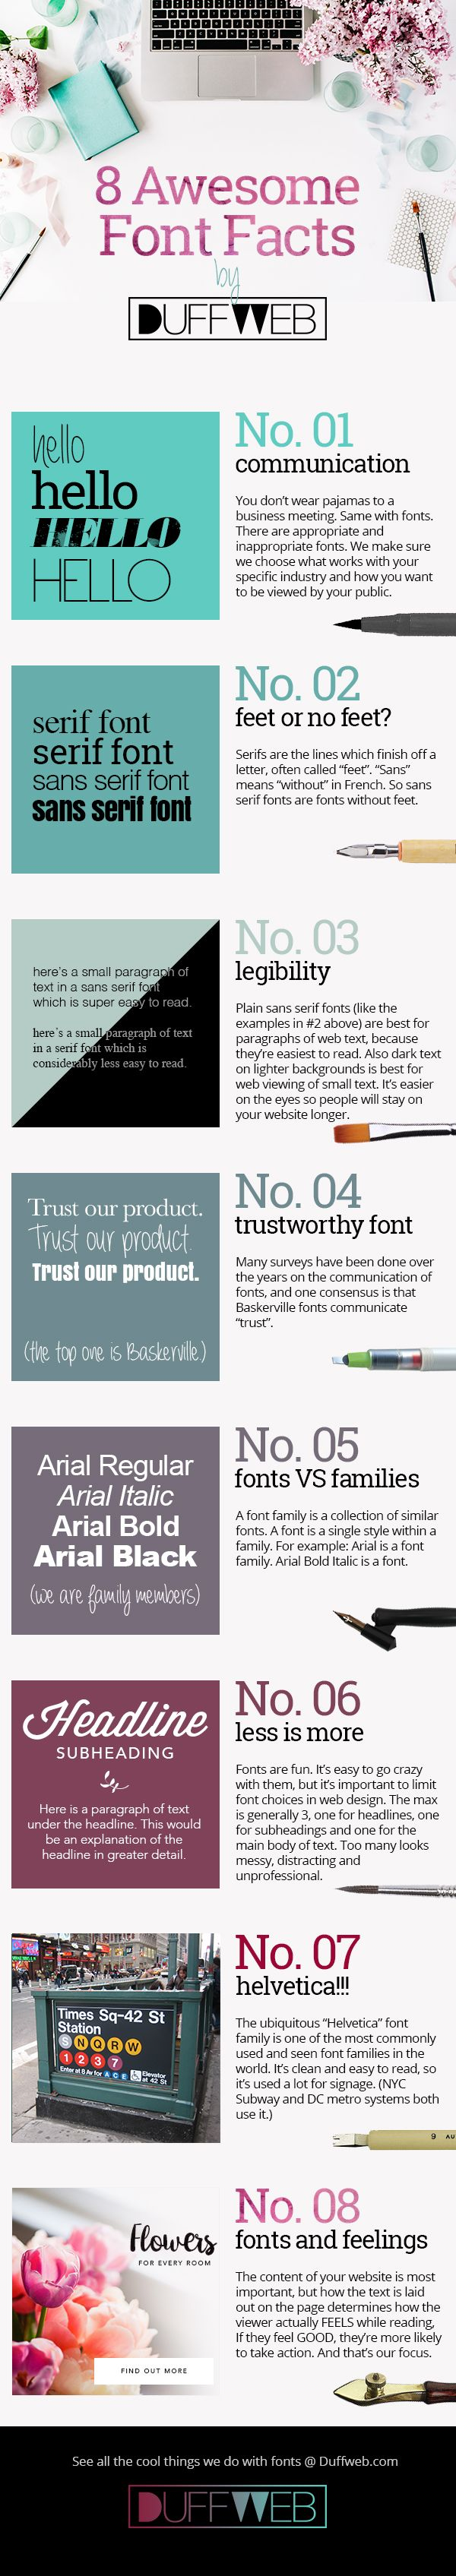 8 Awesome Font Facts infographic by Duffweb. Duffweb